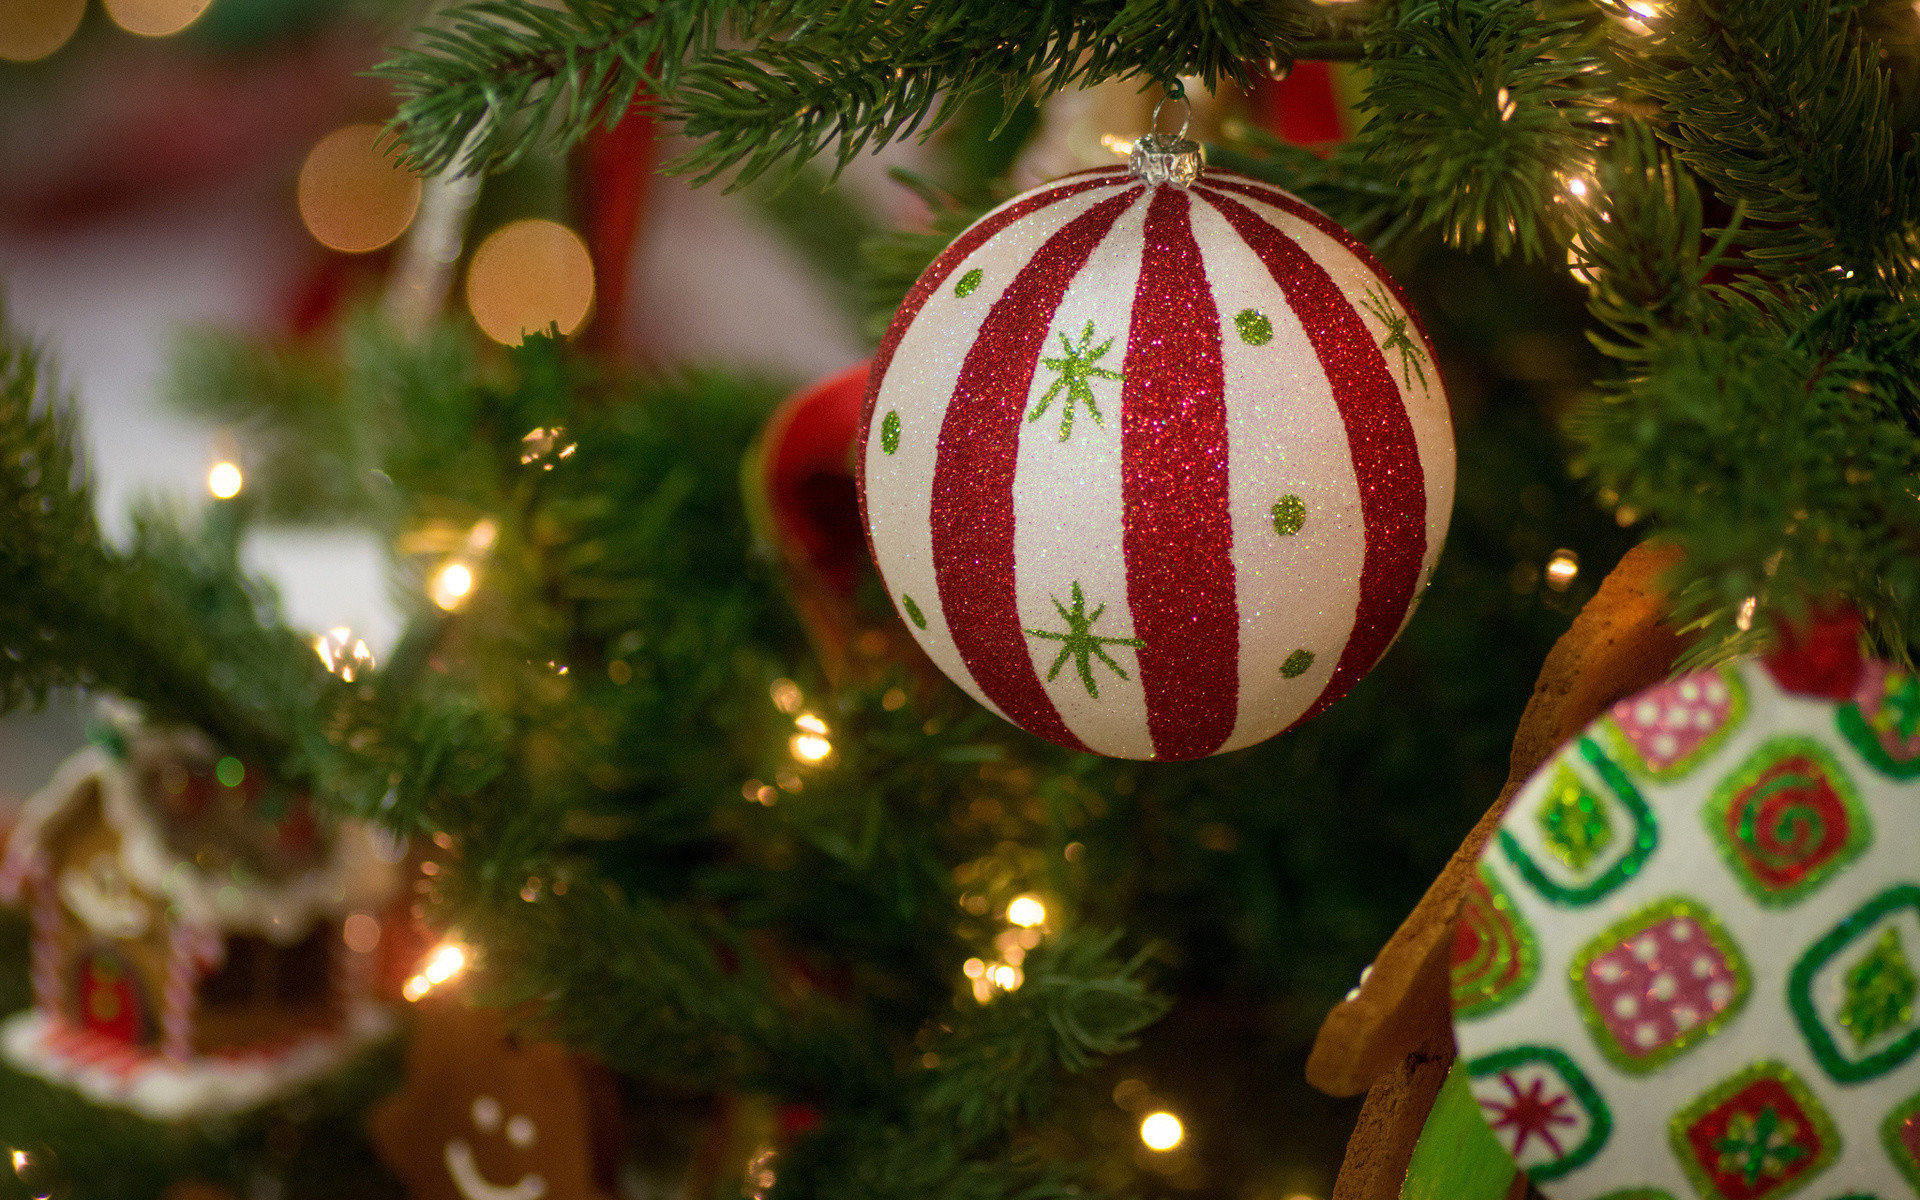 Christmas ornaments Awesome Christmas ornament Backgrounds Of Incredible 48 Images Christmas ornaments